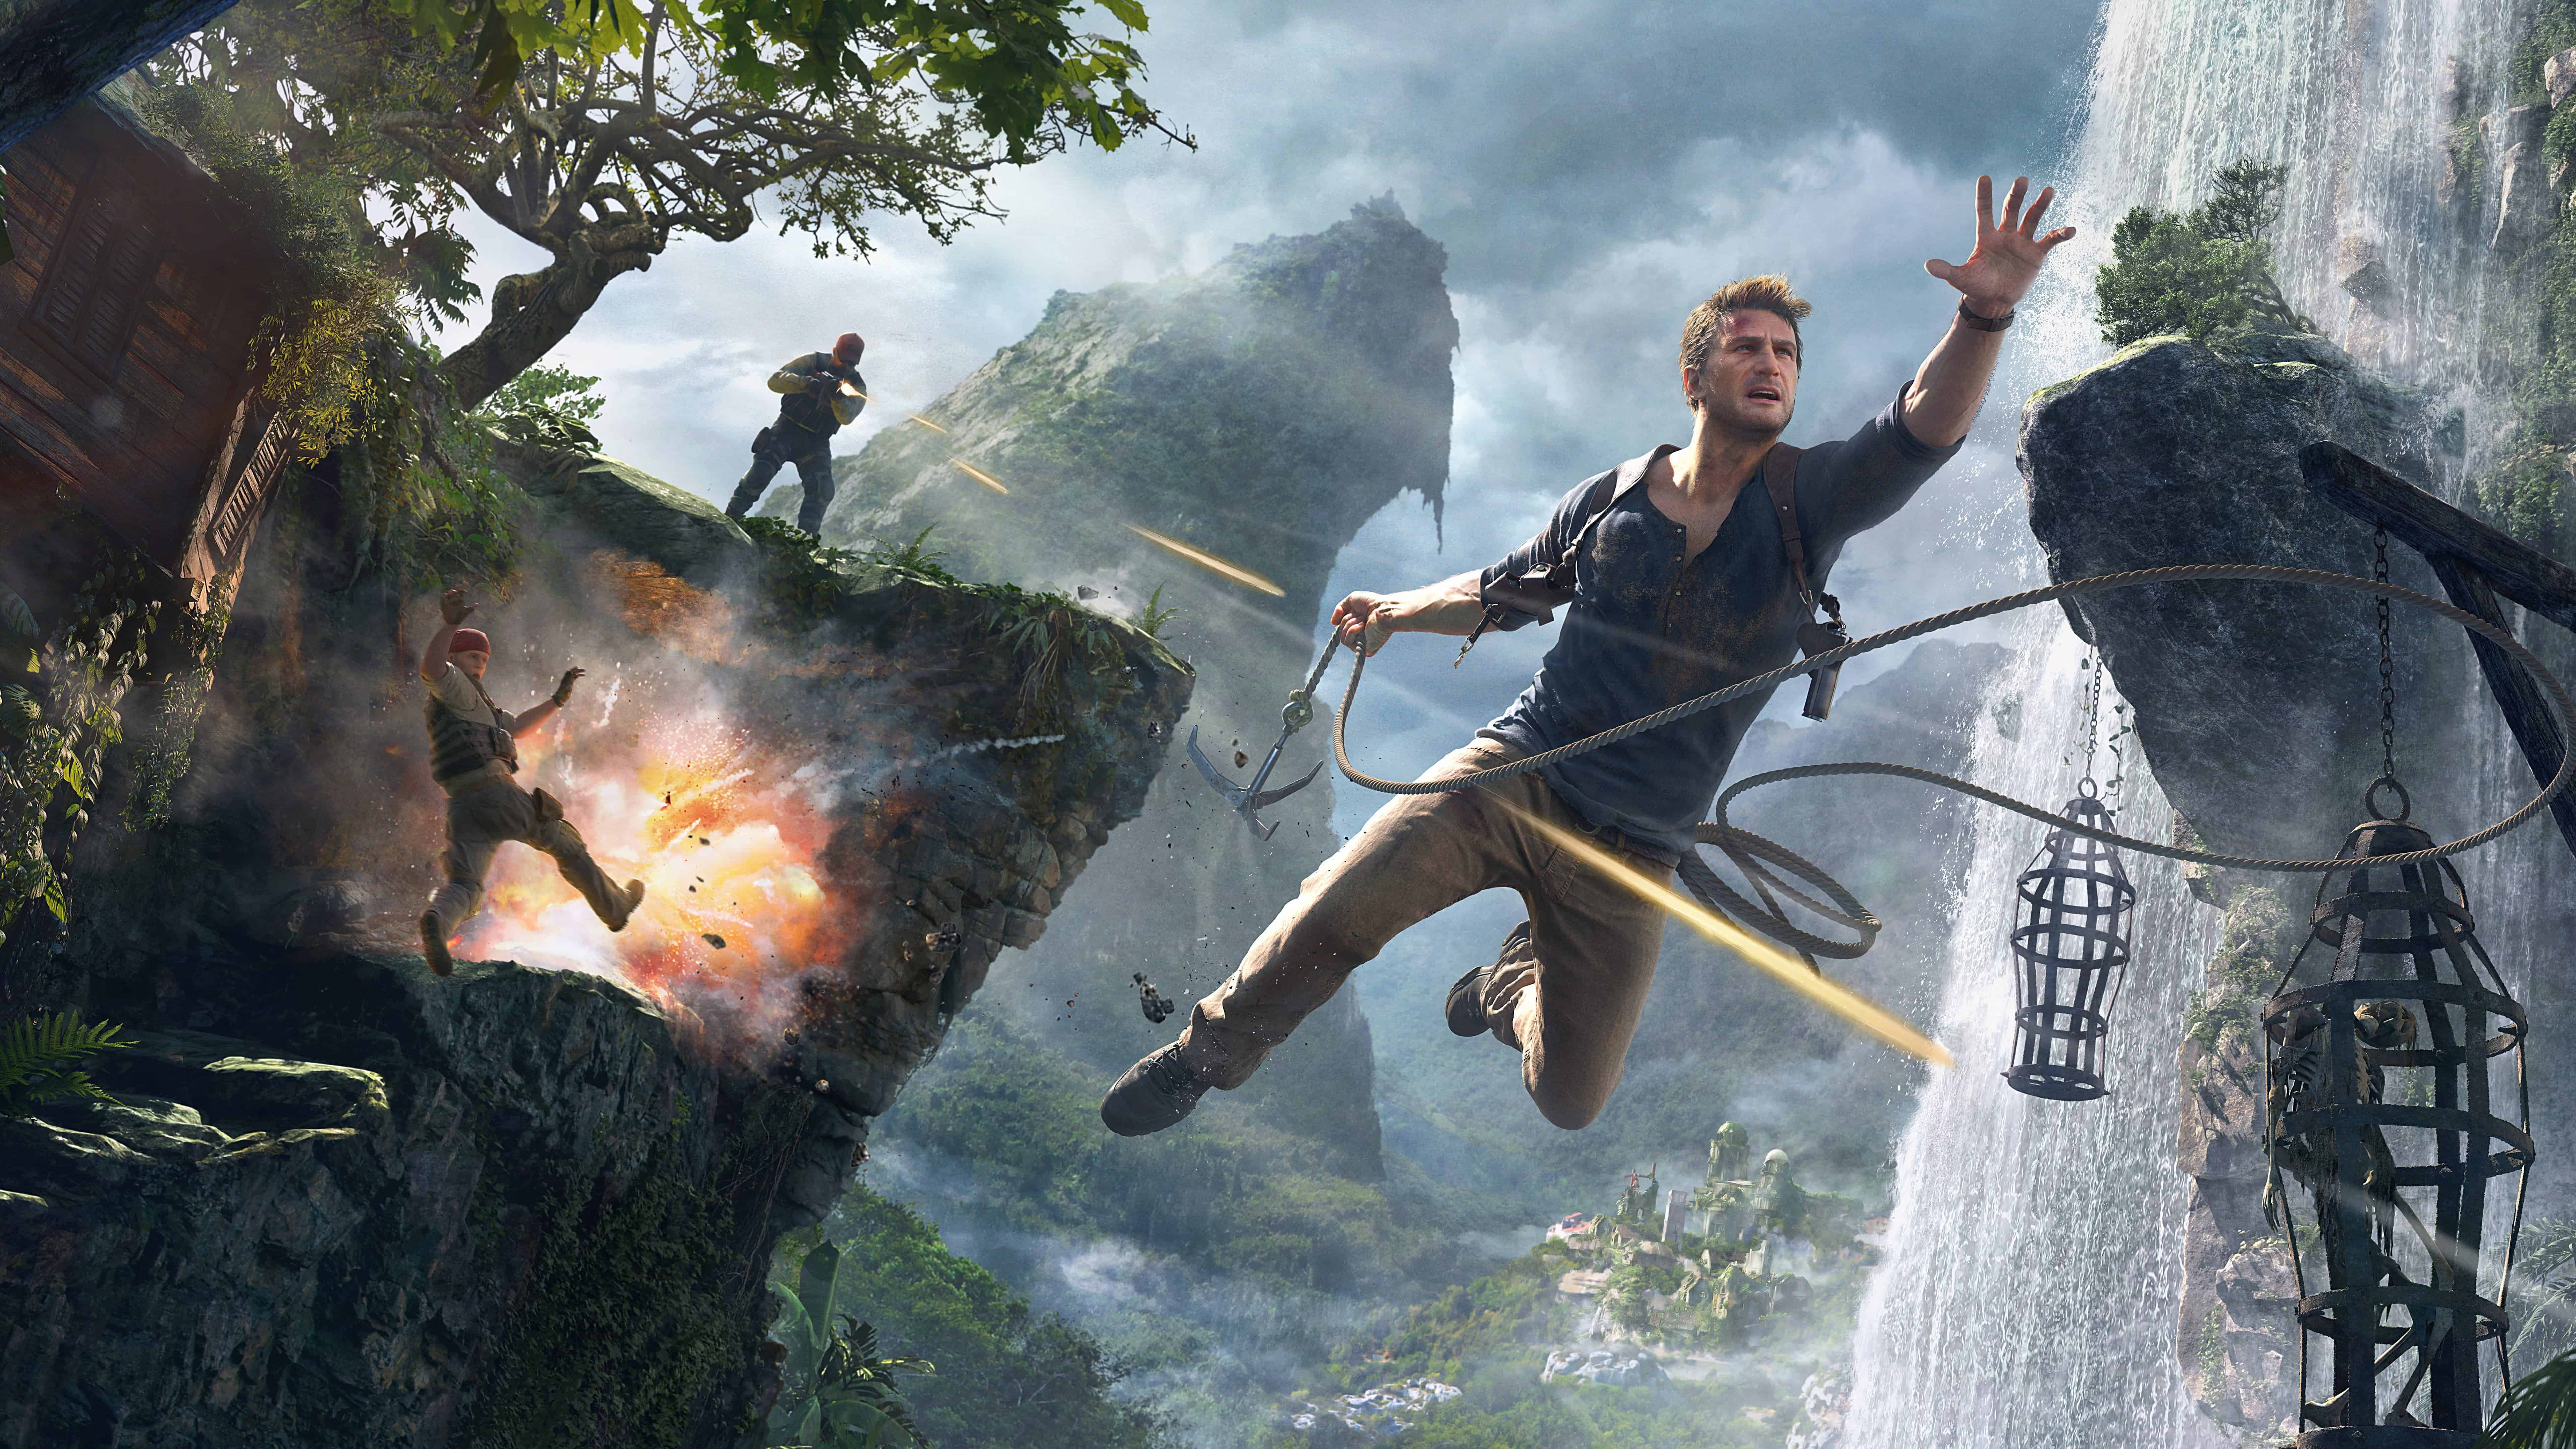 uncharted 4 concept art uhd 8k wallpaper